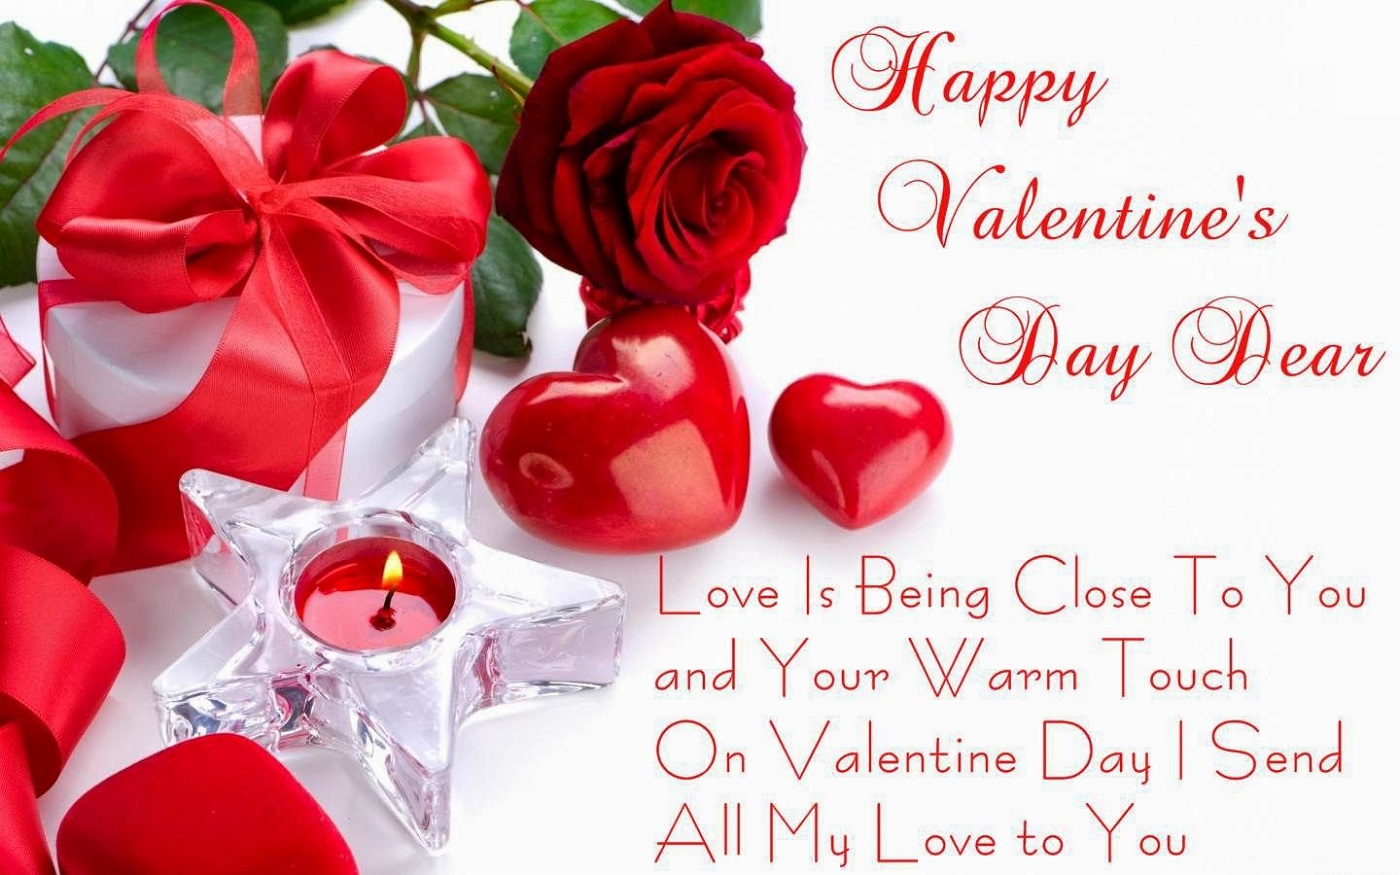 valentines day poems 2017 free download